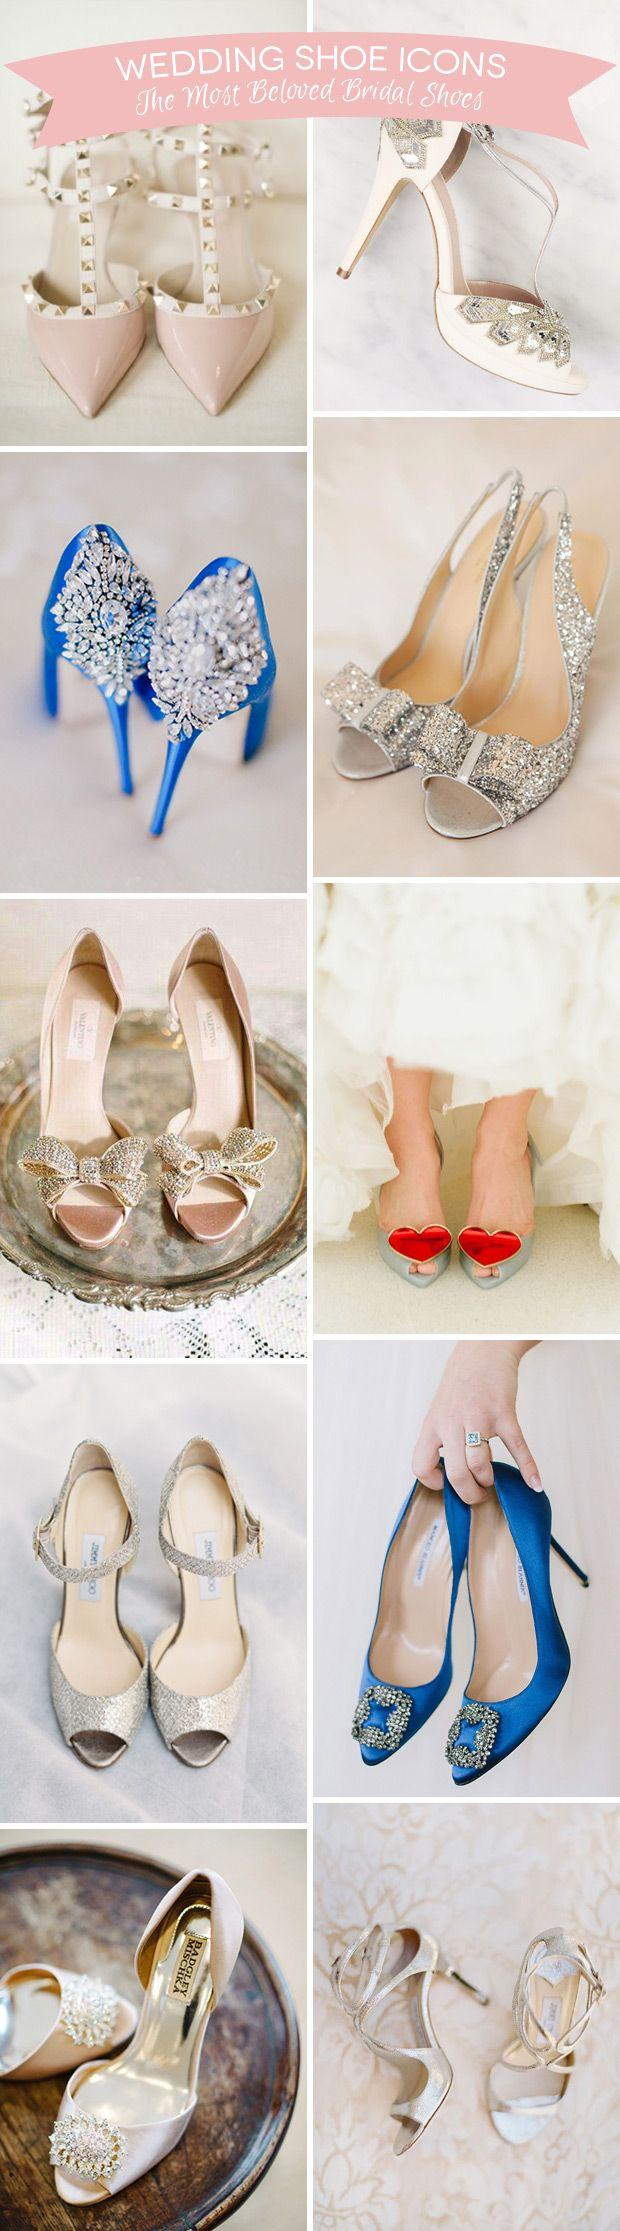 Mariage - Shoe Icons - The Top 10 Most Popular Wedding Shoes Ever